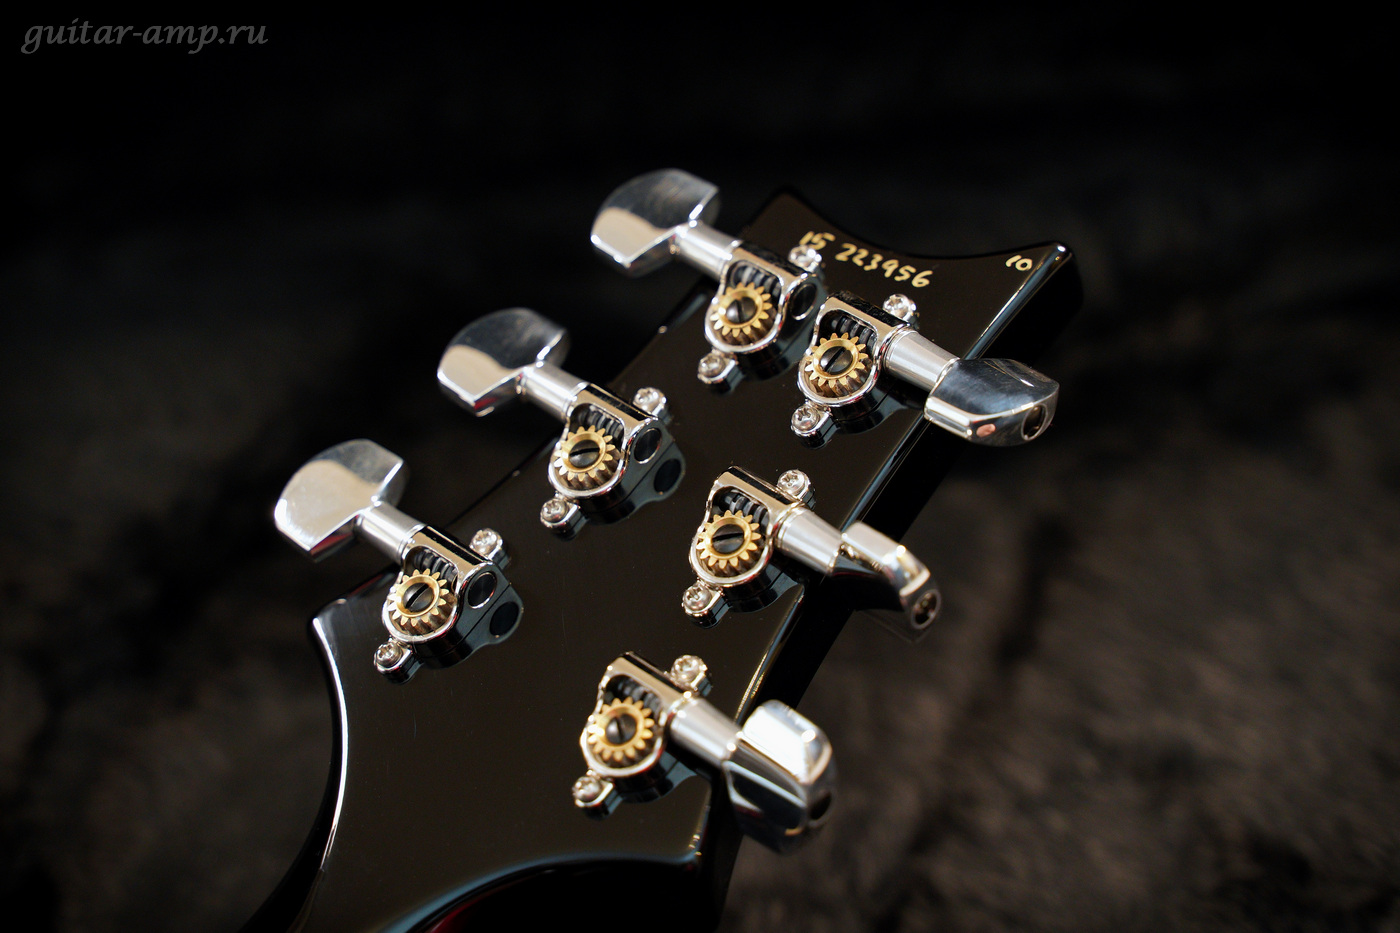 PRS SC245 Charcoal Grey Black 10 Top 2015 14_garx1400.jpg